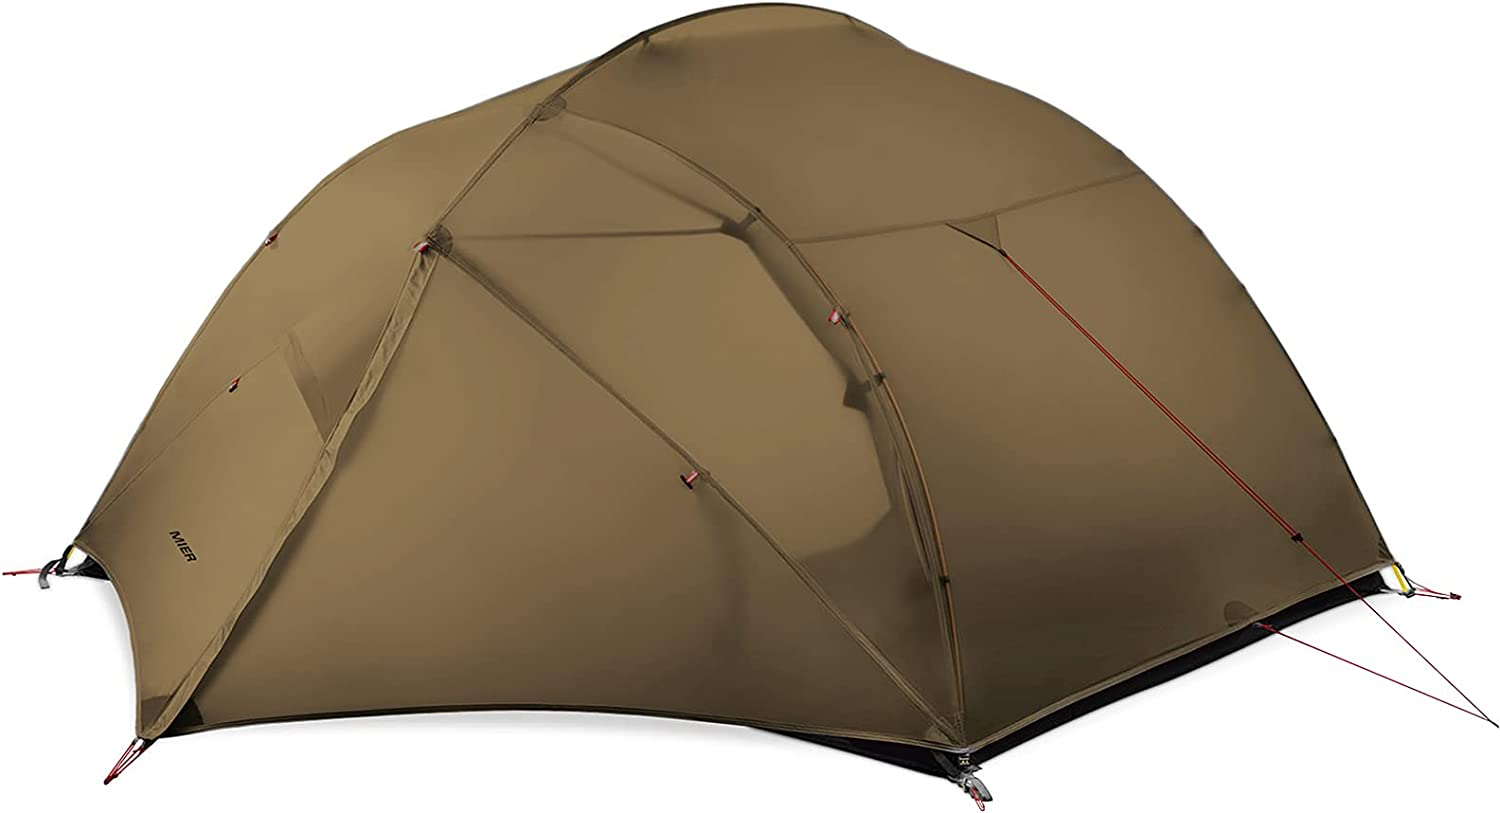 Max 71% OFF MIER Ultralight Waterproof Sale item Backpacking Tent for 4-Pe 3-Person or